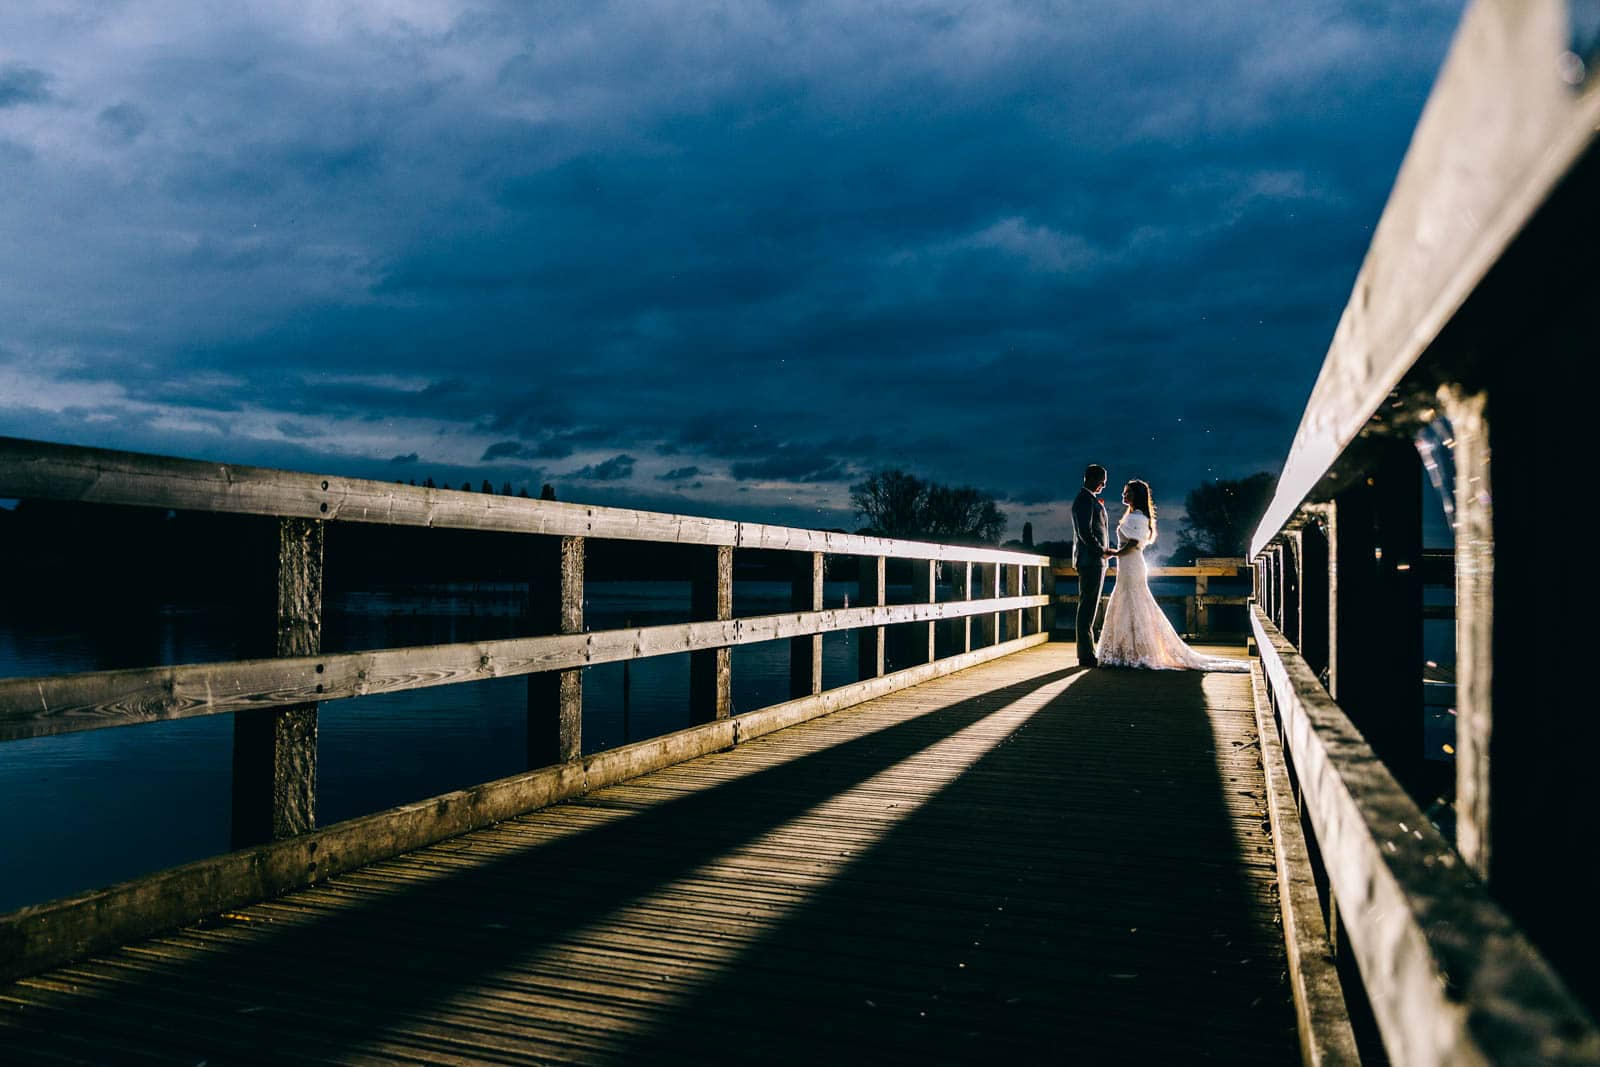 Off camera flash wedding photo at Wicksteed Park on the lake